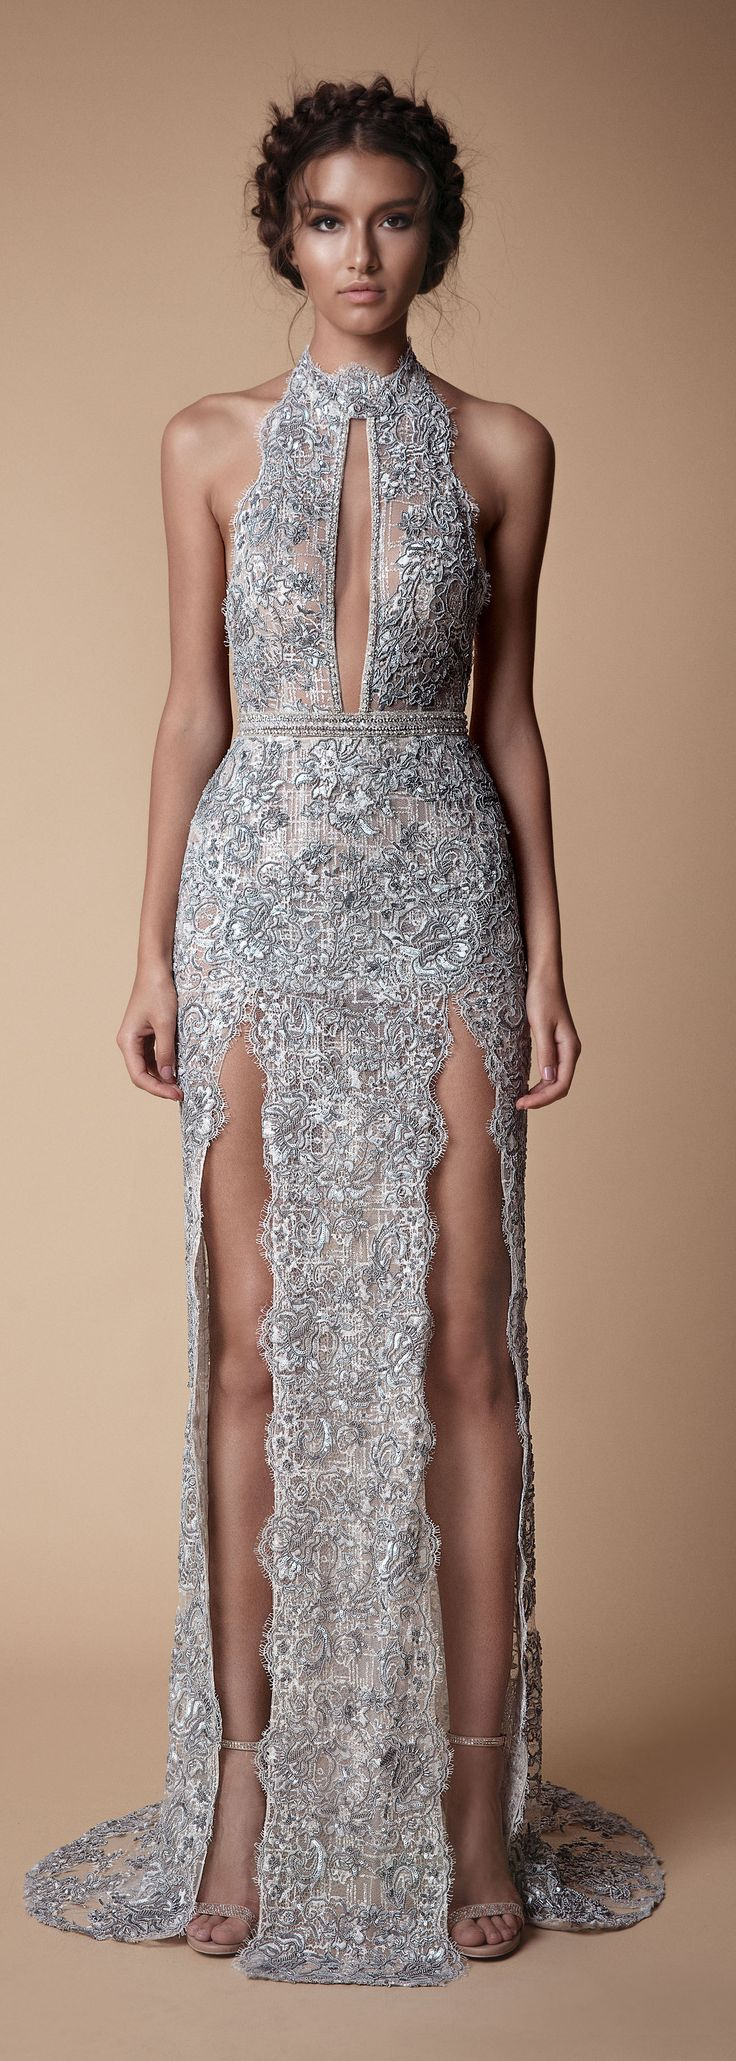 37 best Fashion images on Pinterest | Evening gowns, Party outfits ...